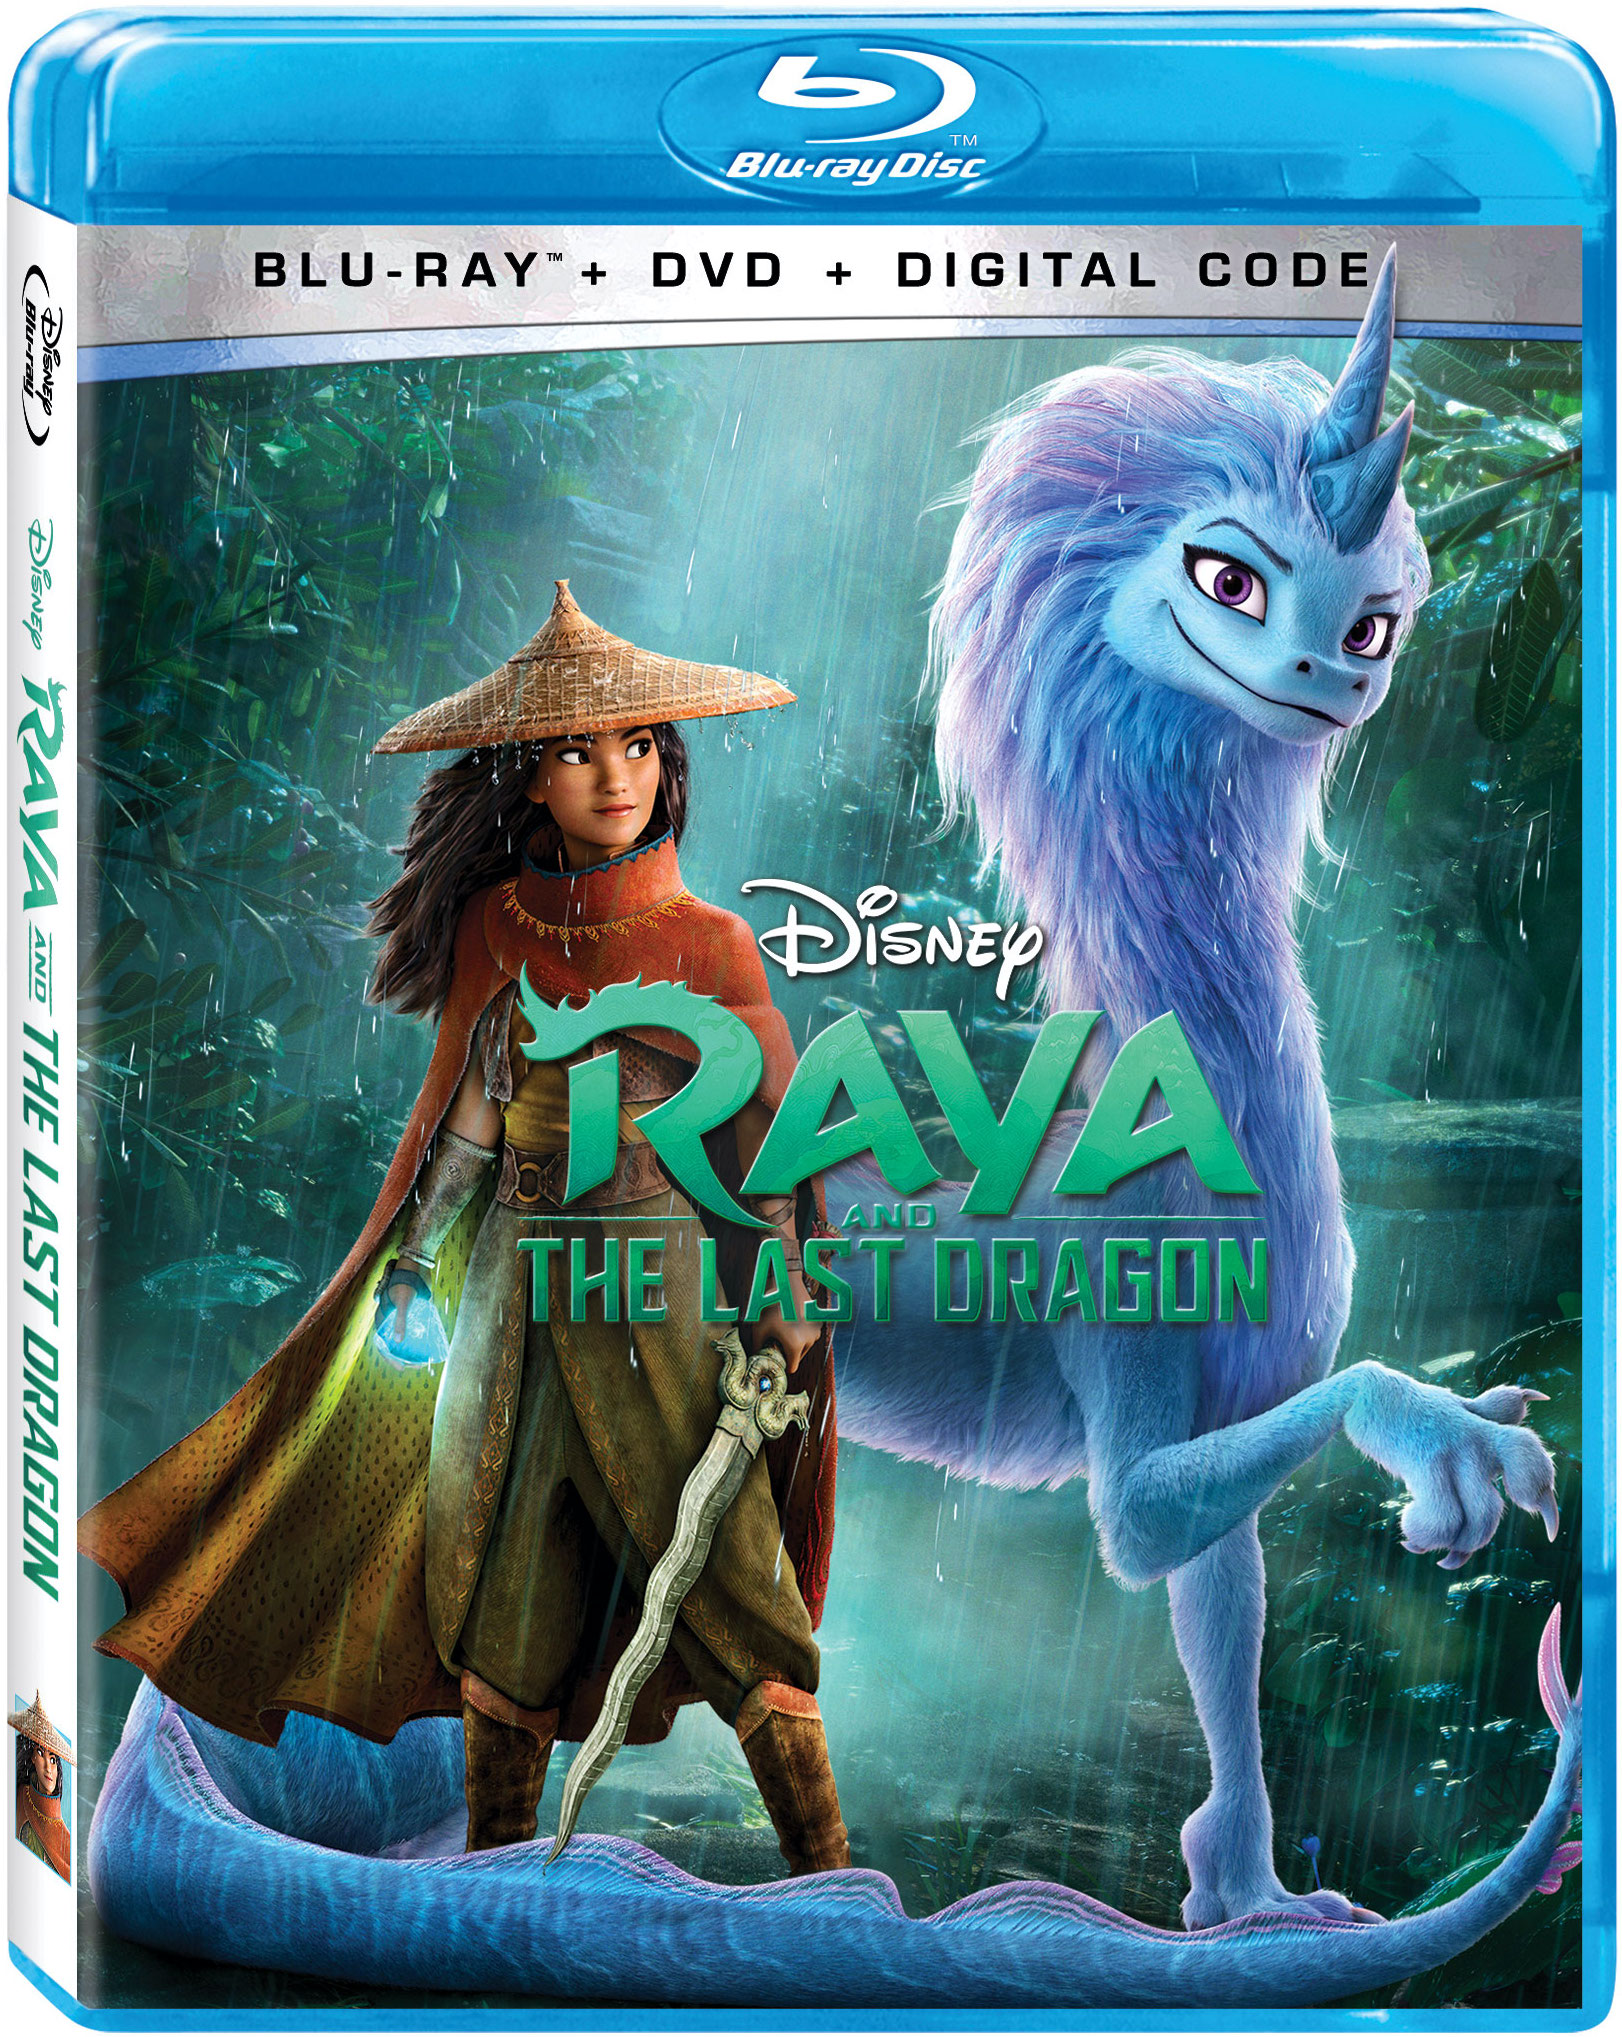 Disney's Raya and the Last Dragon Release Info